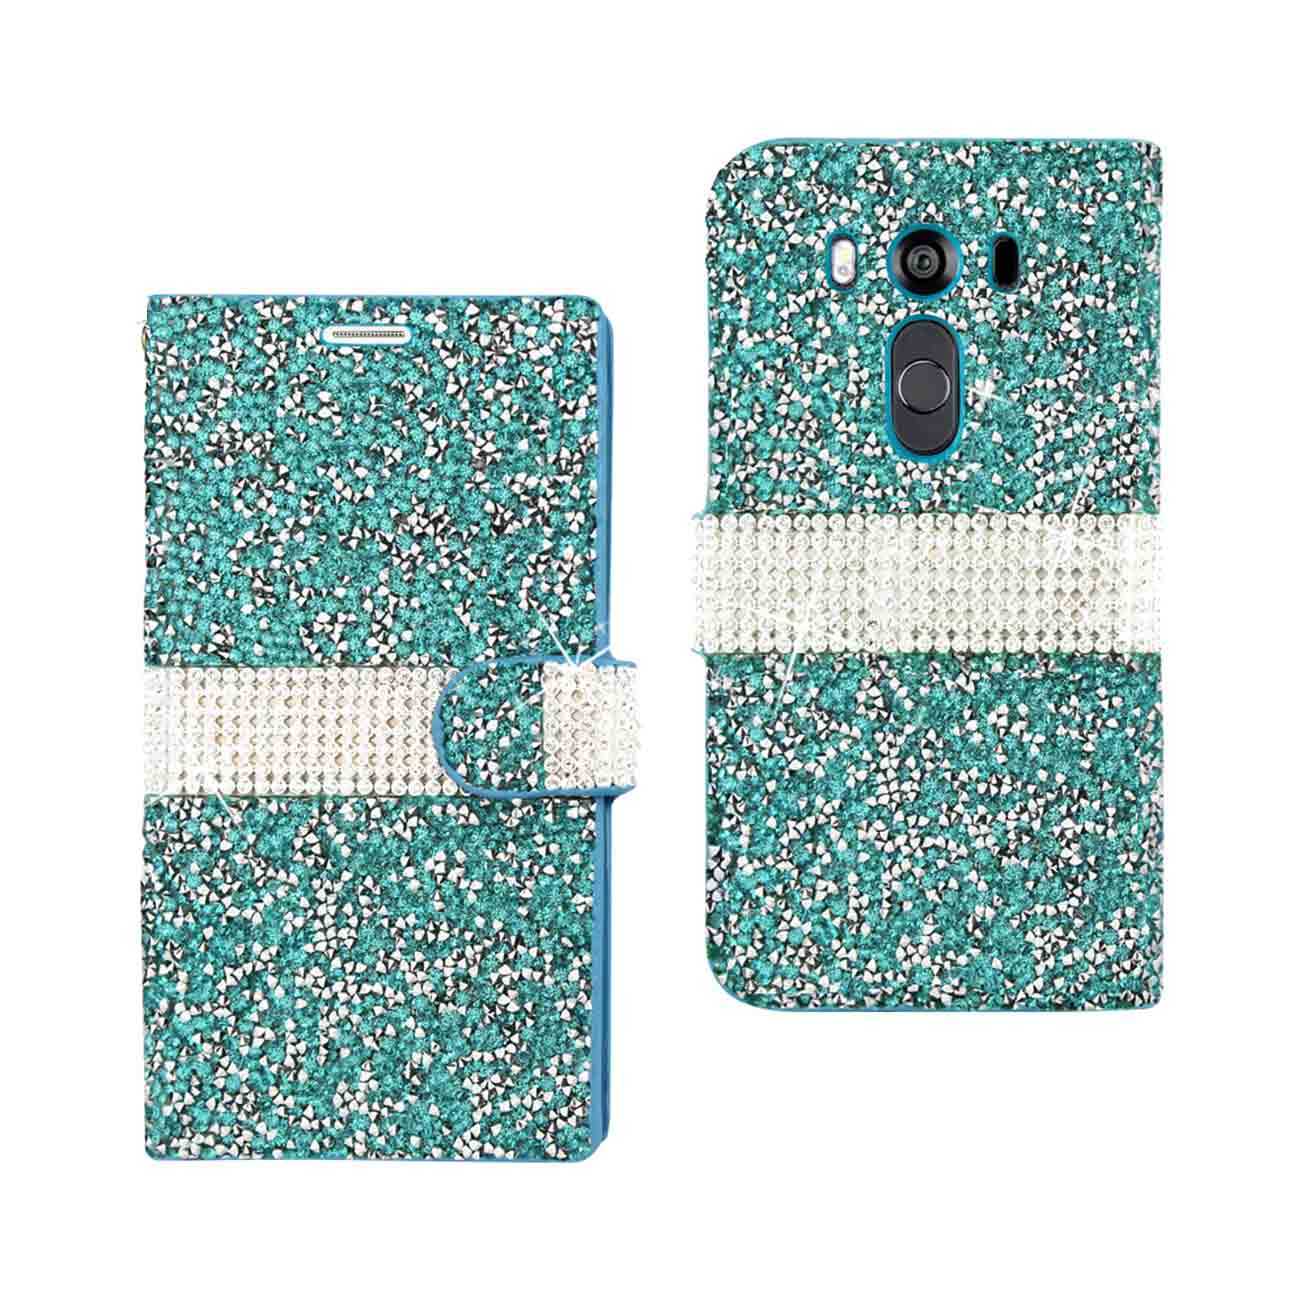 LG V10 JEWELRY RHINESTONE WALLET CASE IN BLUE